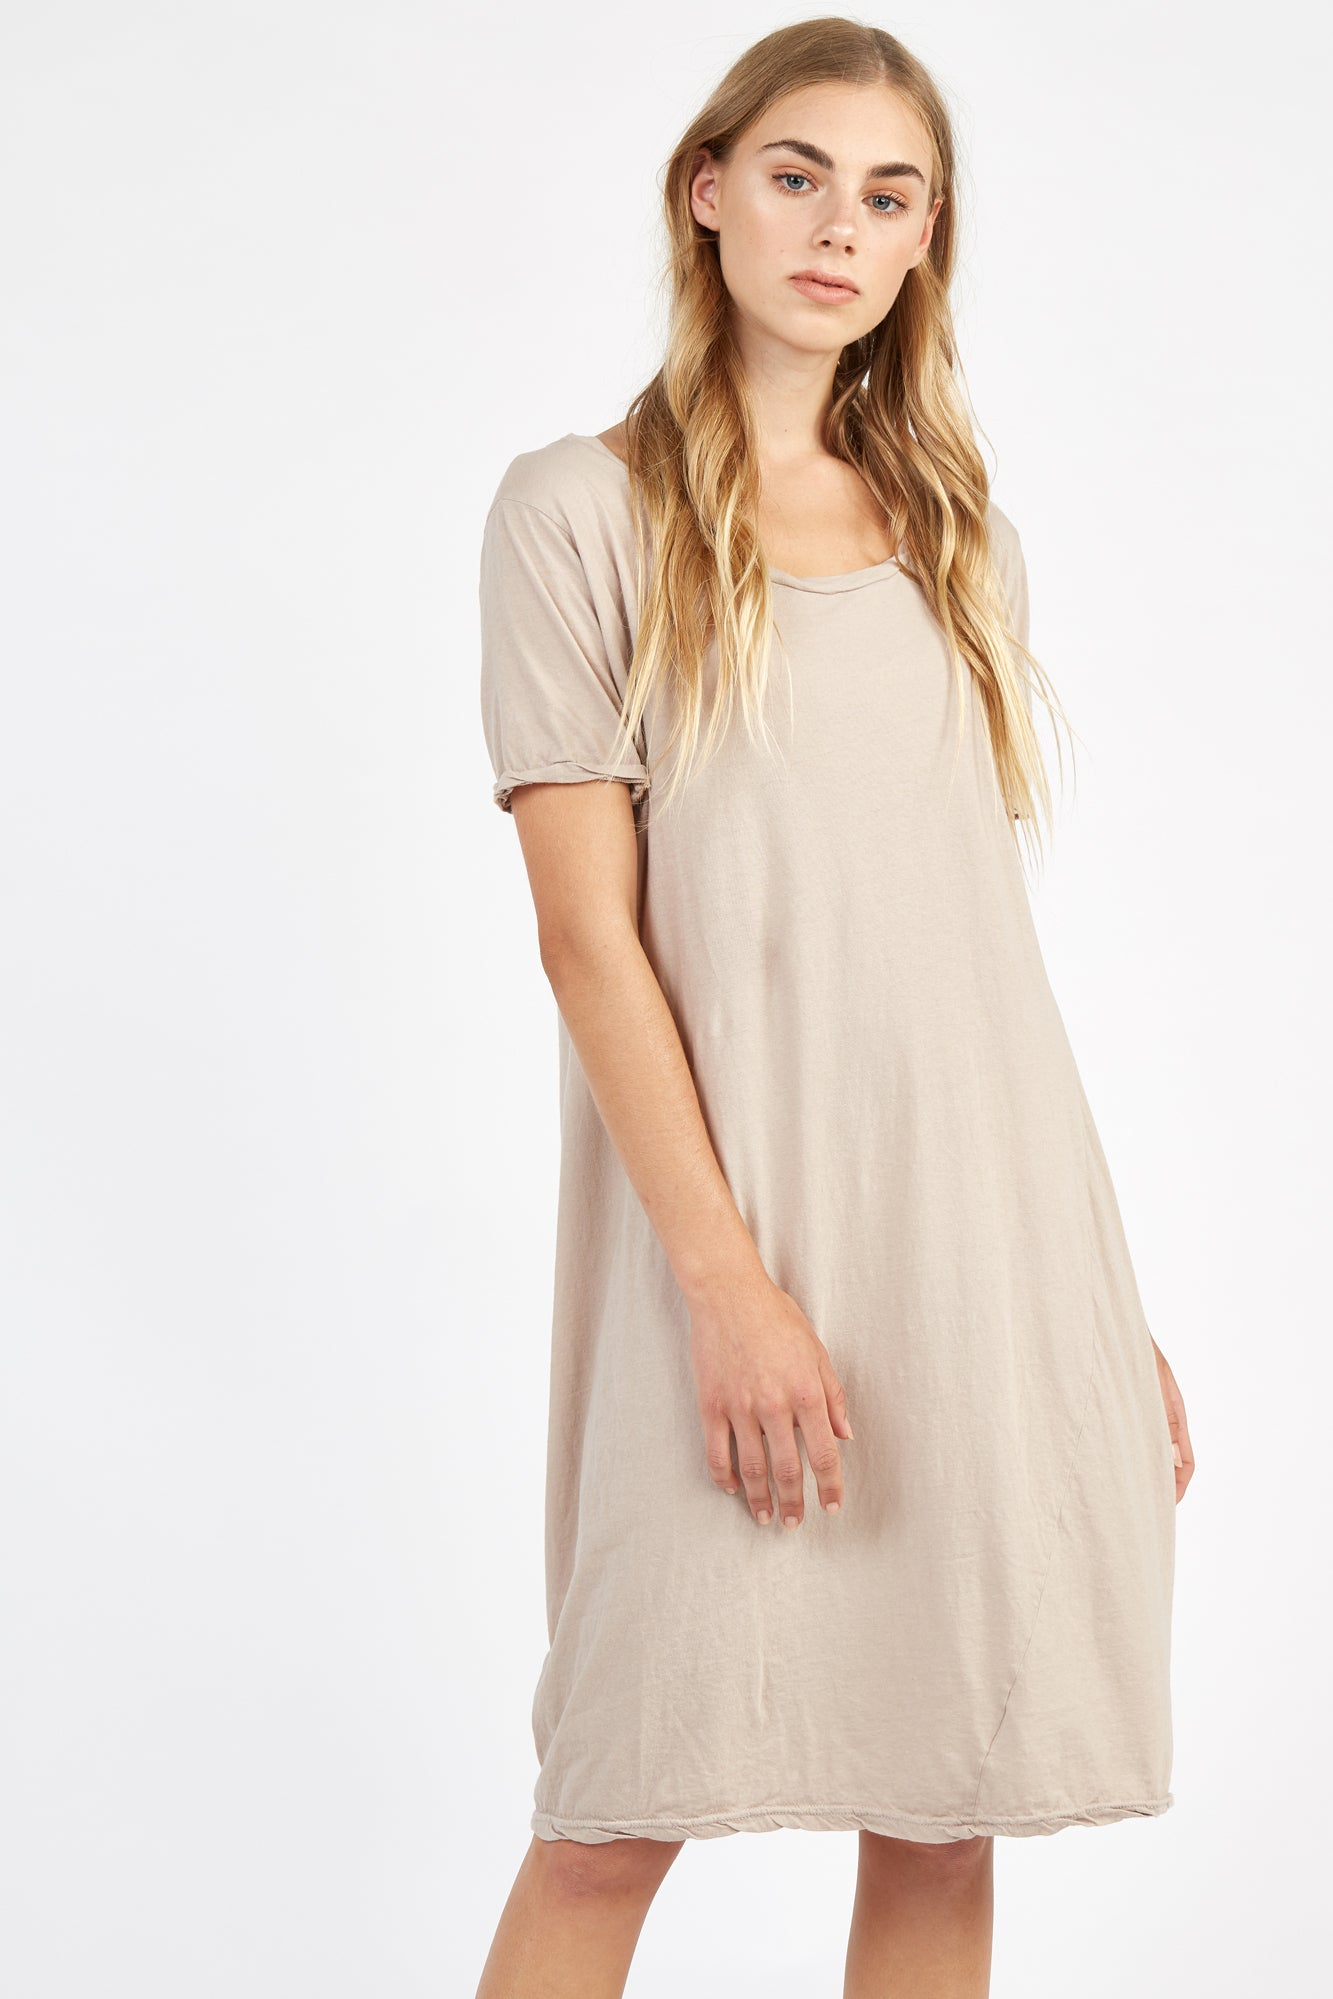 SCOOPED TEE DRESS - BEACHWOOD